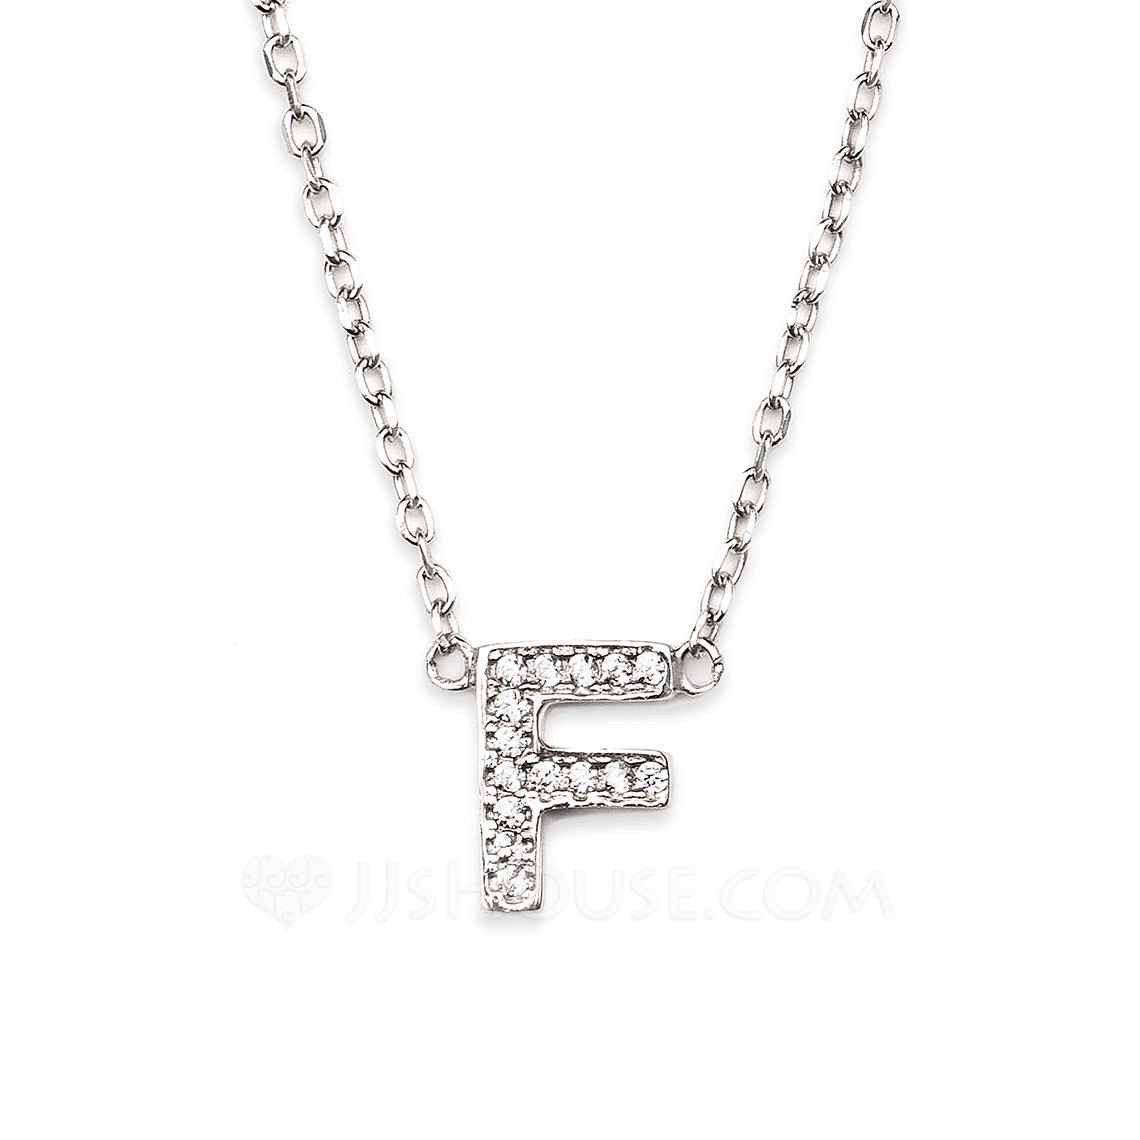 Custom Silver Initial Letter Initial Necklace - Birthday Gifts Mother's Day Gifts